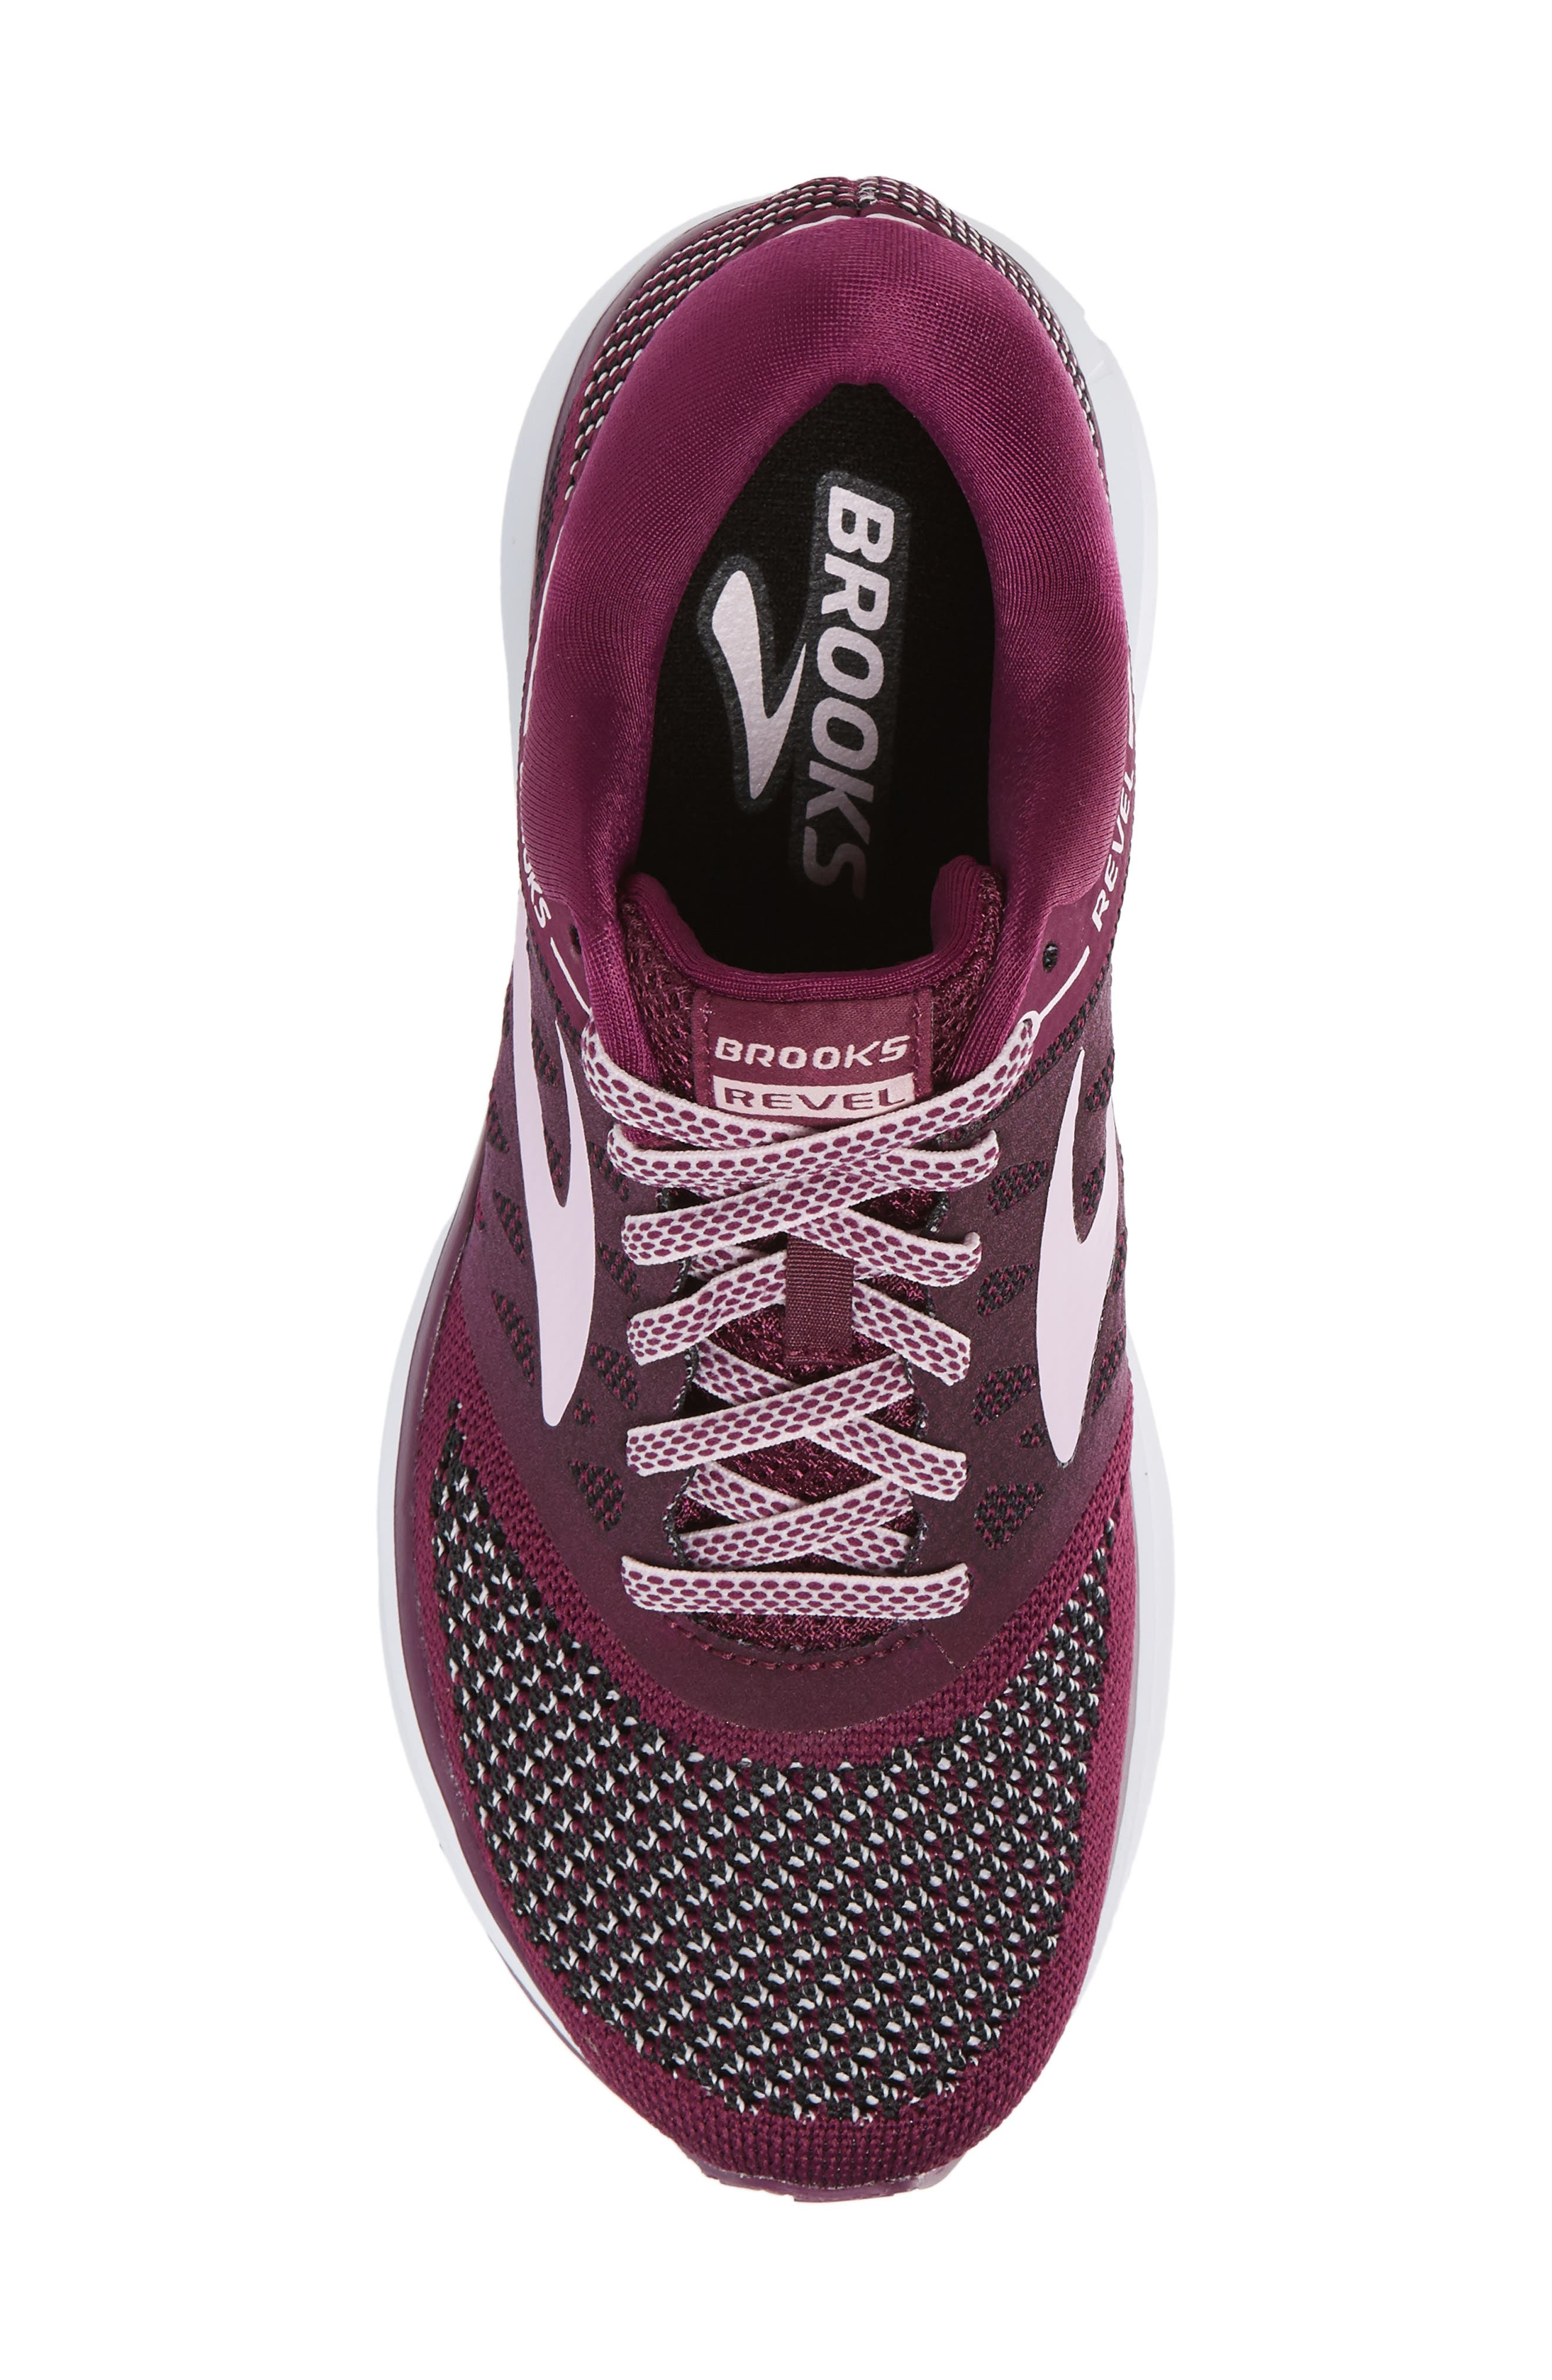 Revel Running Shoe,                             Alternate thumbnail 5, color,                             Plum/ Pink/ Black